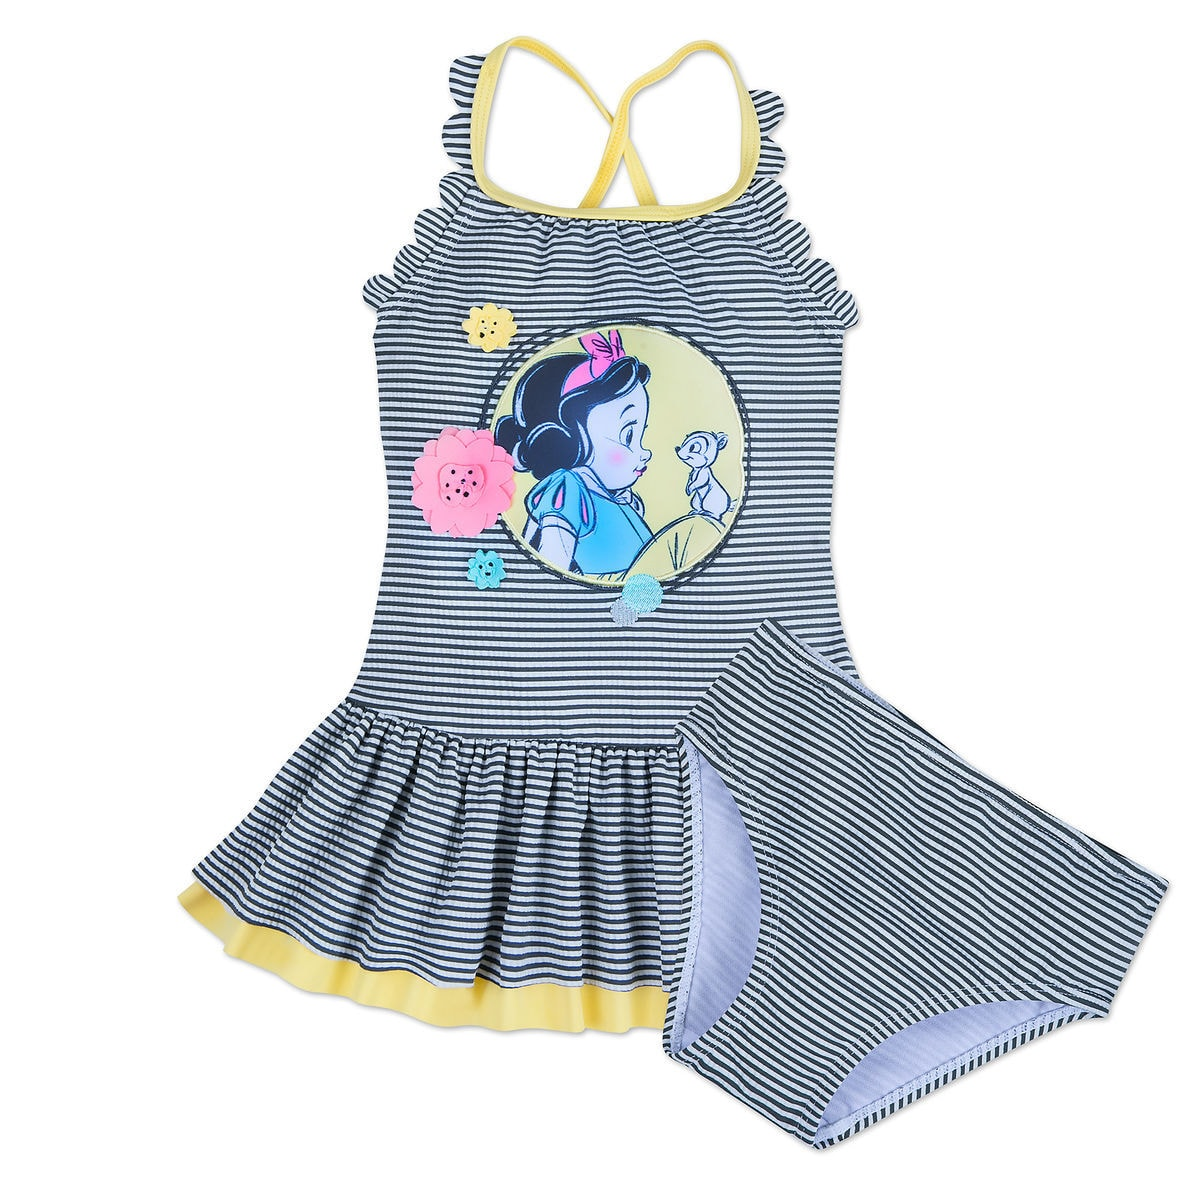 b9ad5b4ee3 Product Image of Disney Animators  Collection Snow White Swimsuit for Girls    1